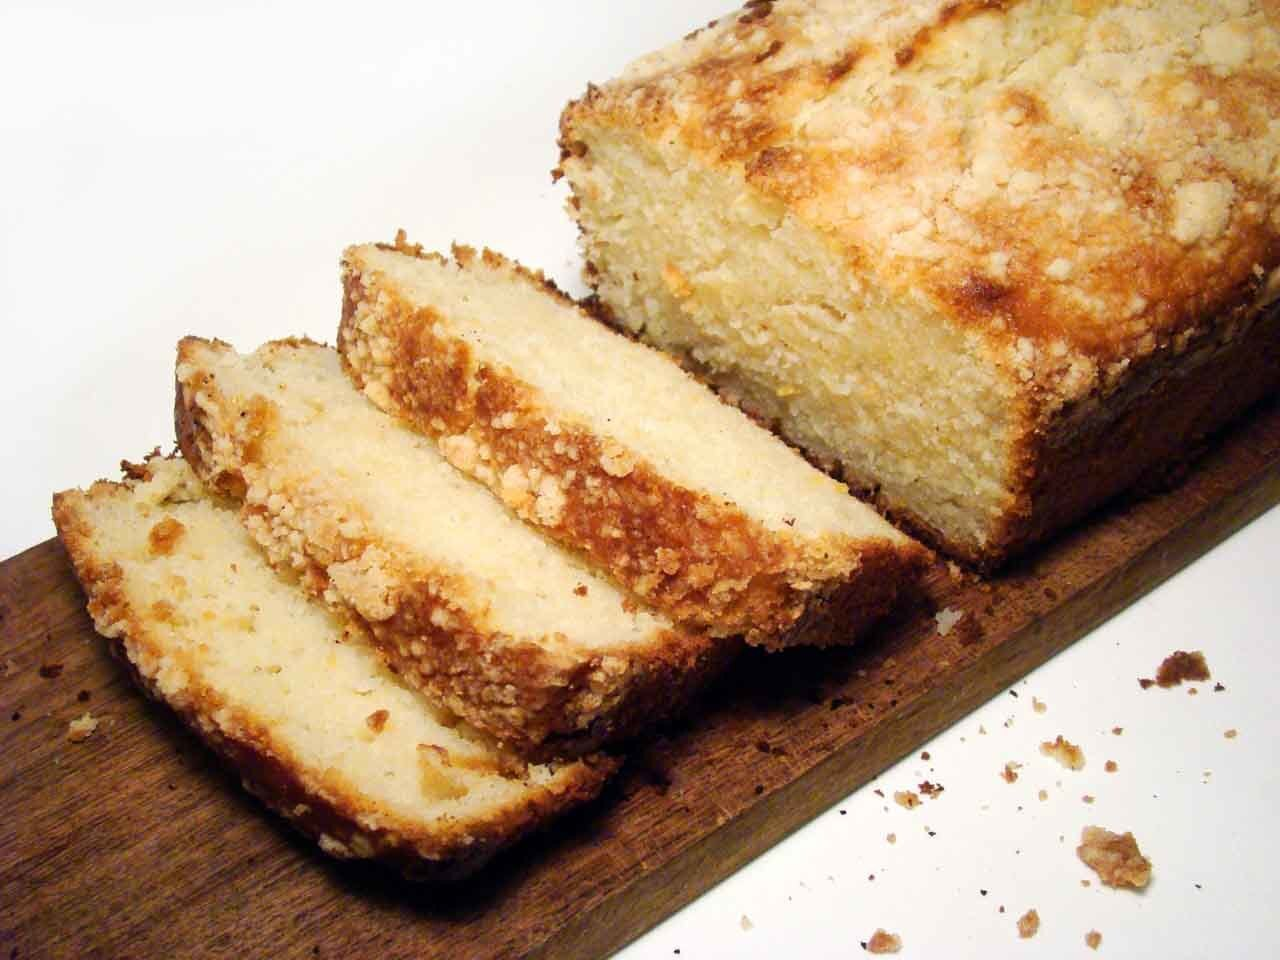 Un simple budin de limón... sin manteca